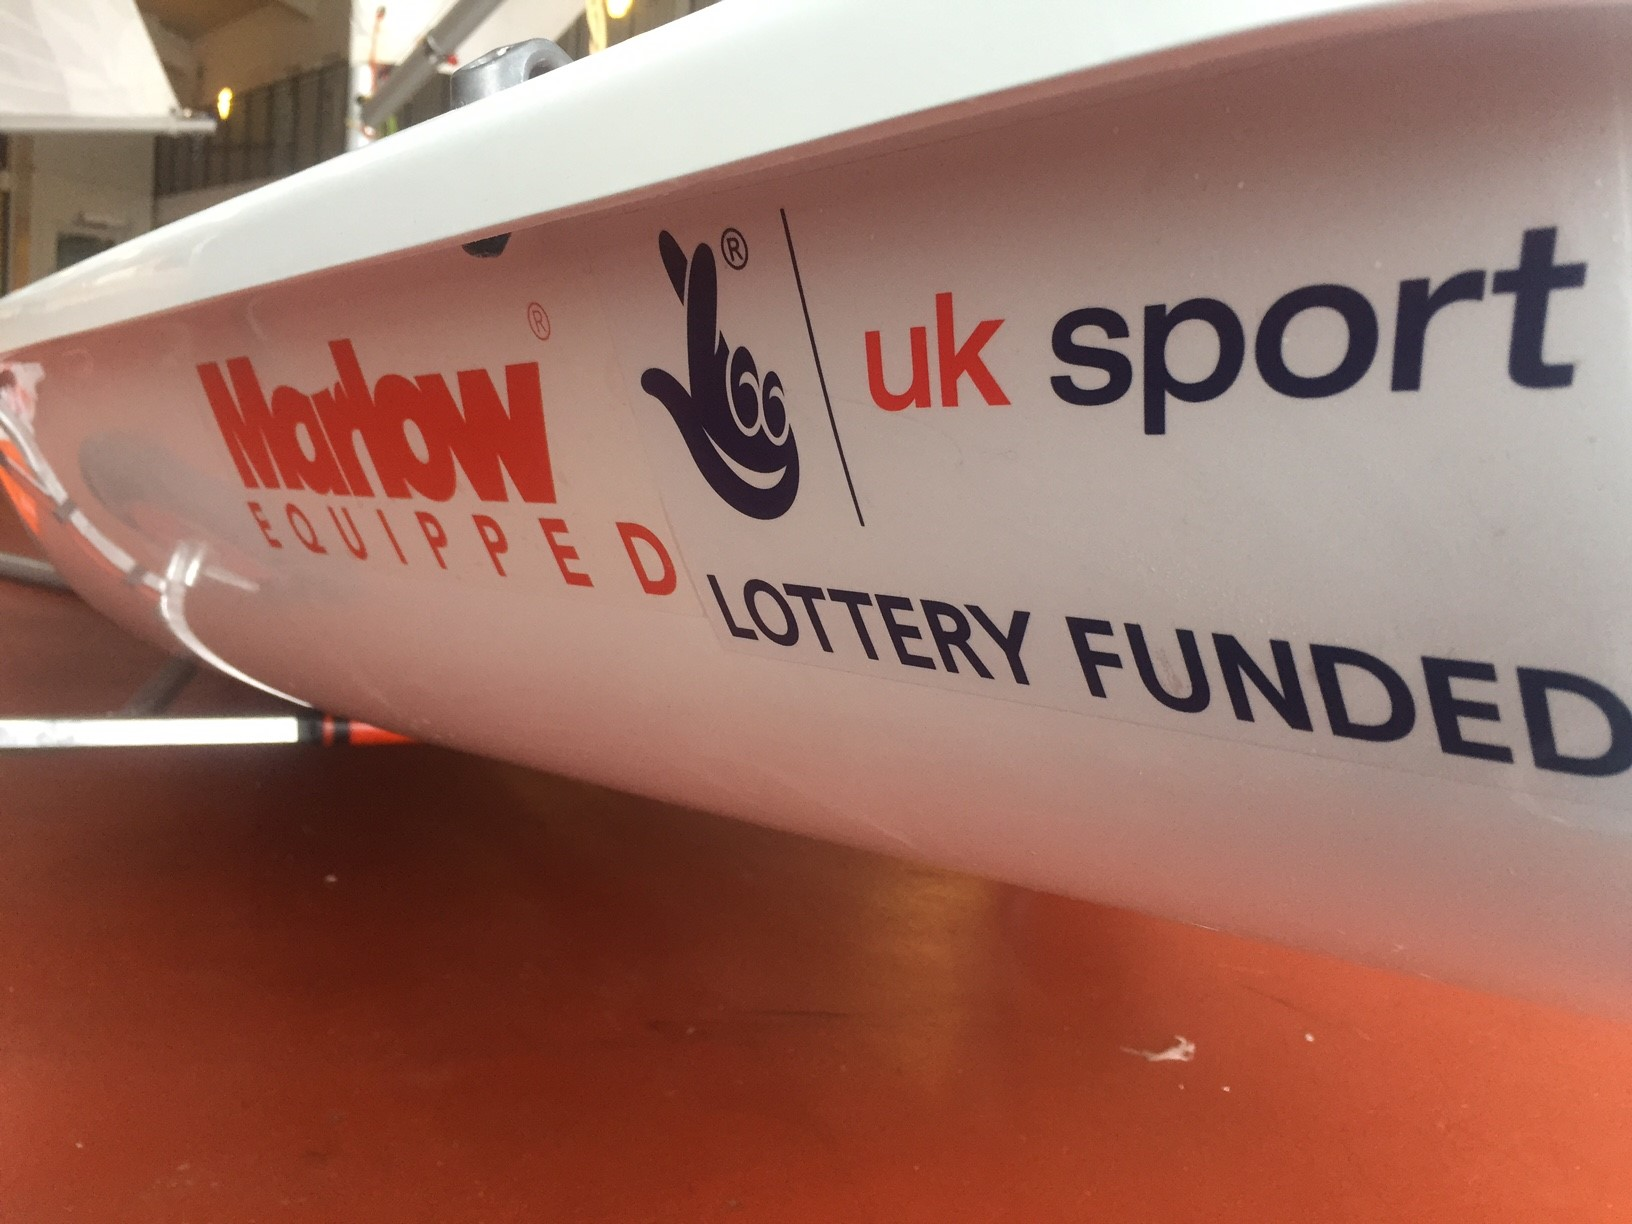 The Marlow Ropes Award will allow me to use the best ropes available in the world and ensure my rigging is the strongest and most reliable in the fleet. A big thanks also to UK Sport who enable me to have world class coaches and training.